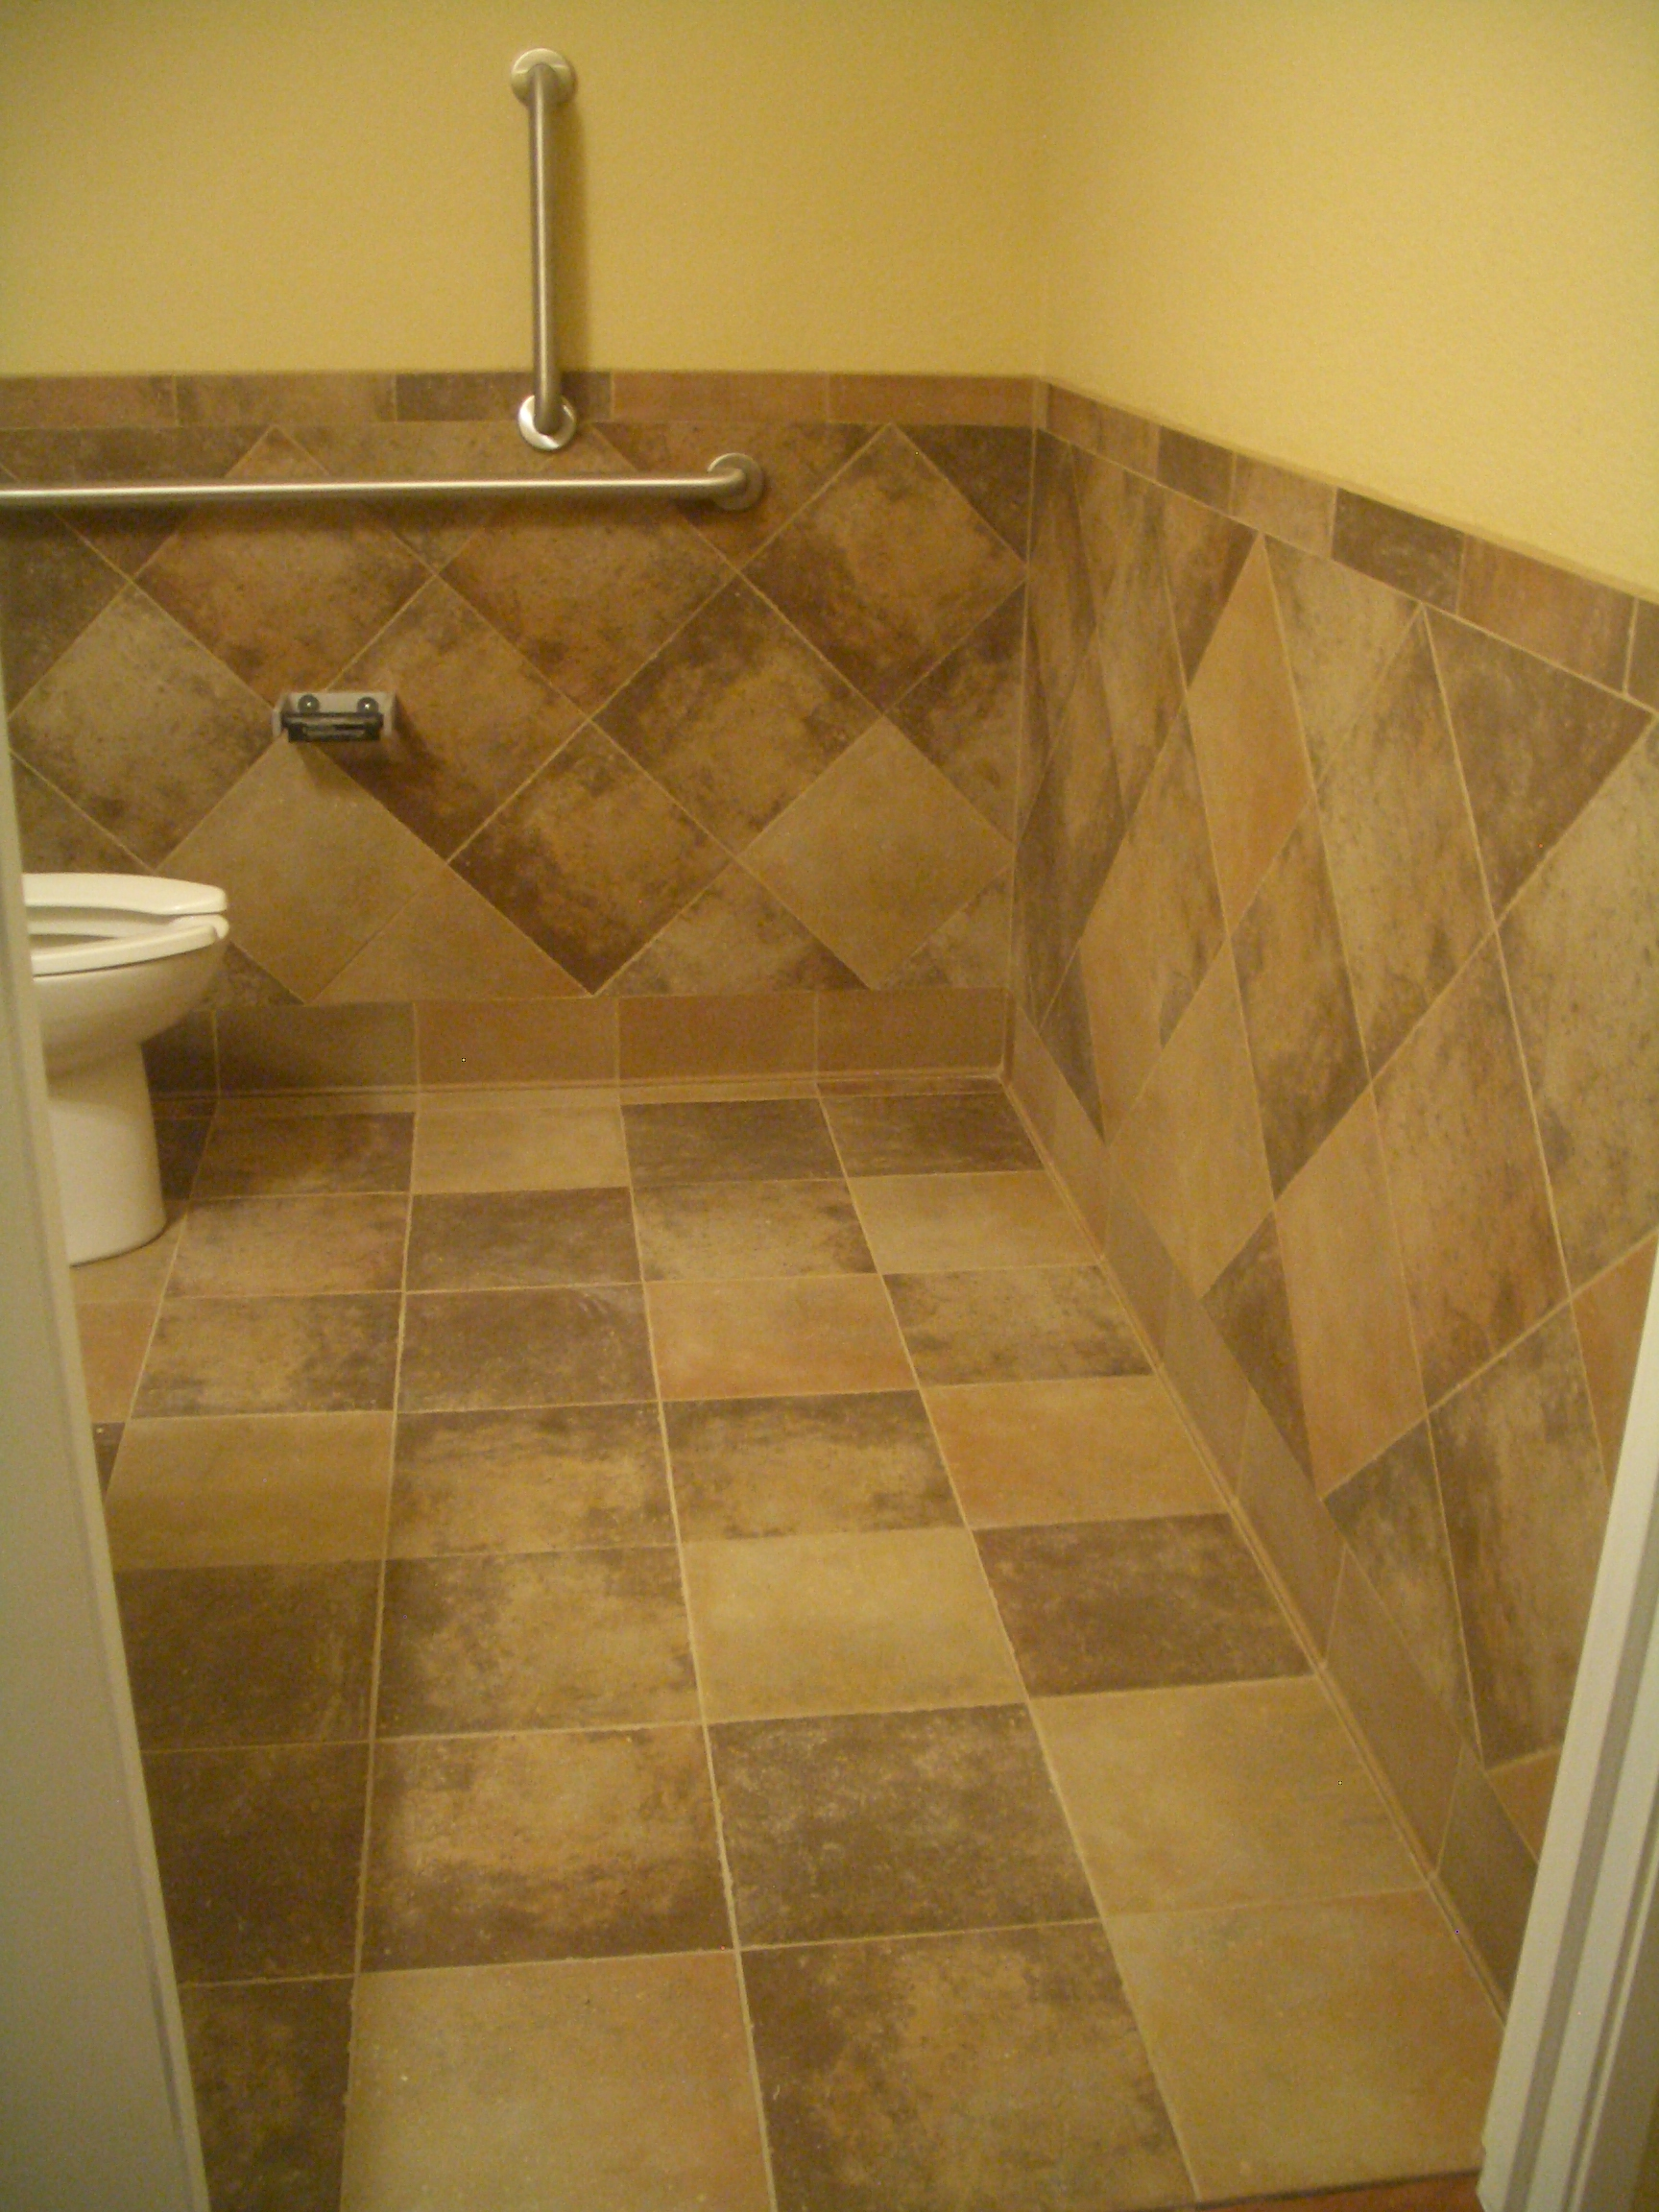 Floor bathroom tile